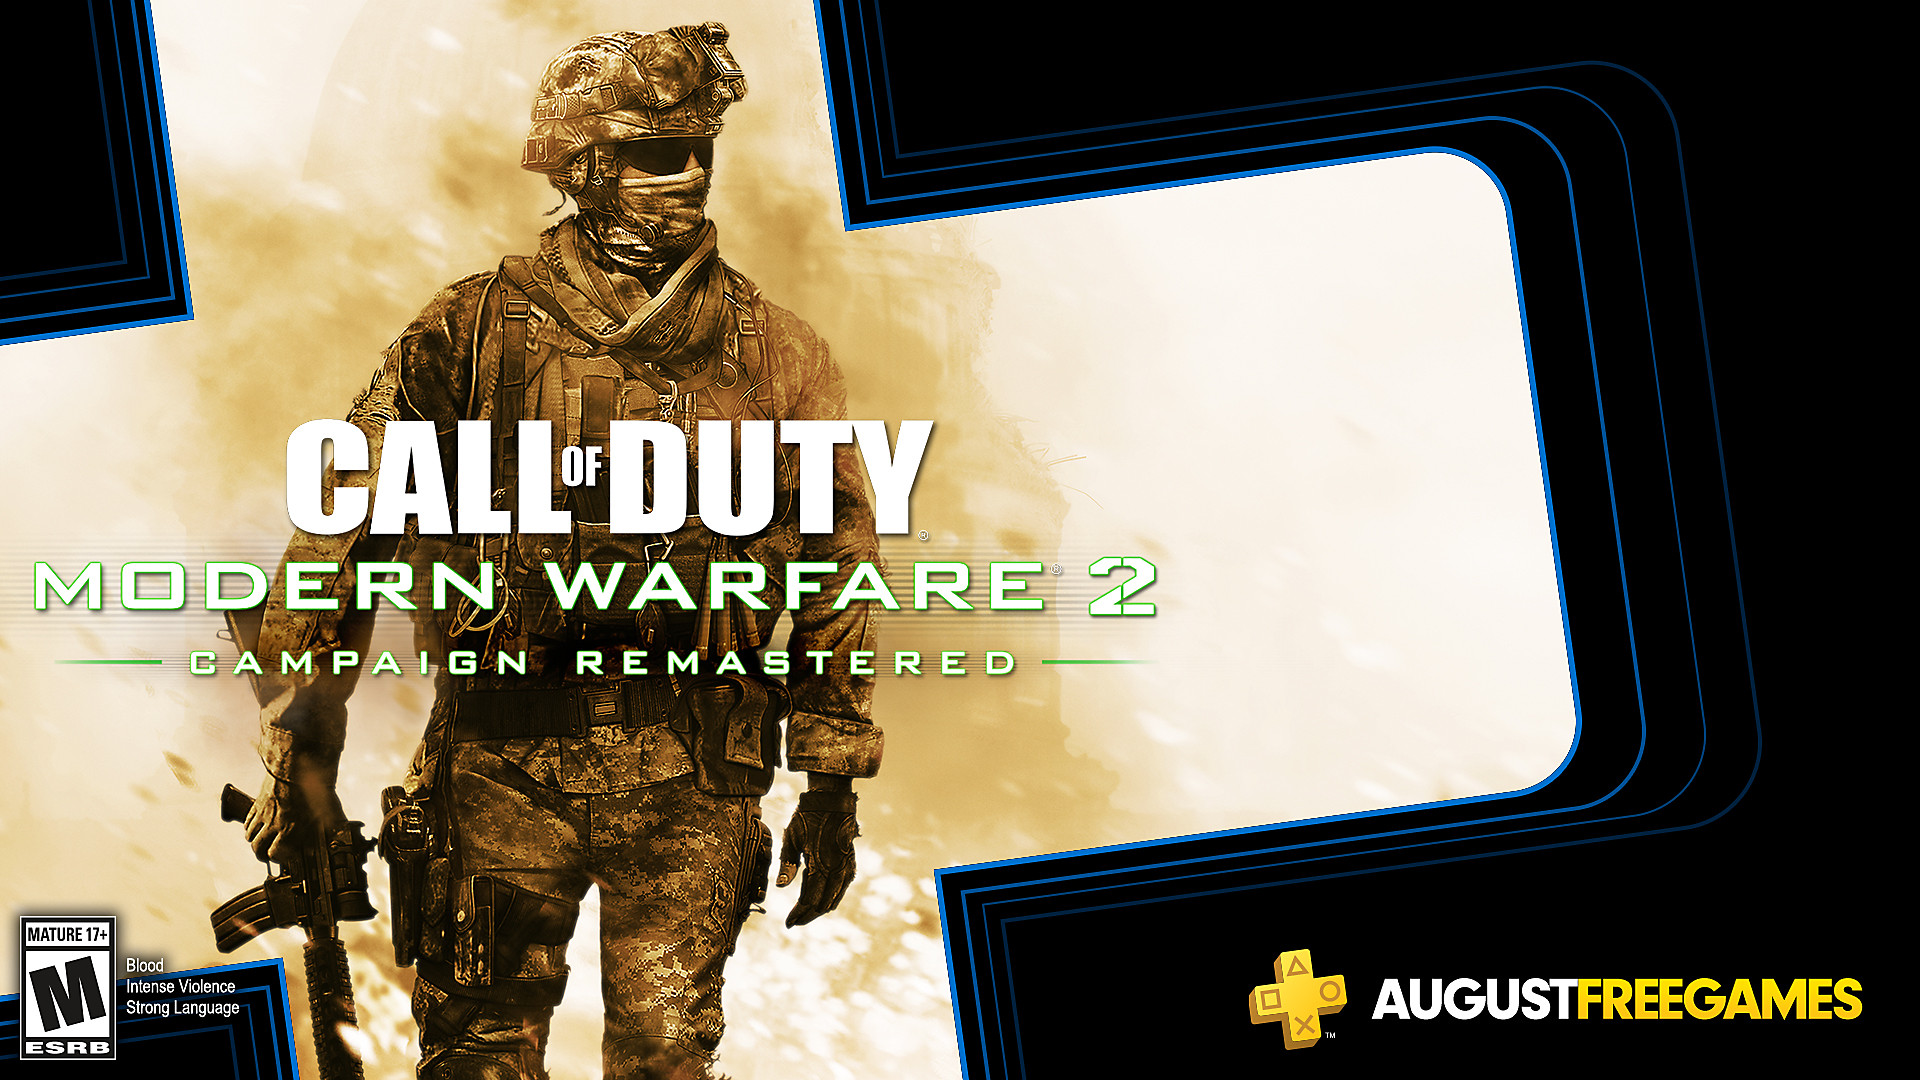 Click here to get Call of Duty: Modern Warfare 2 Remastered free from the PlayStation Store for PlayStation Plus members